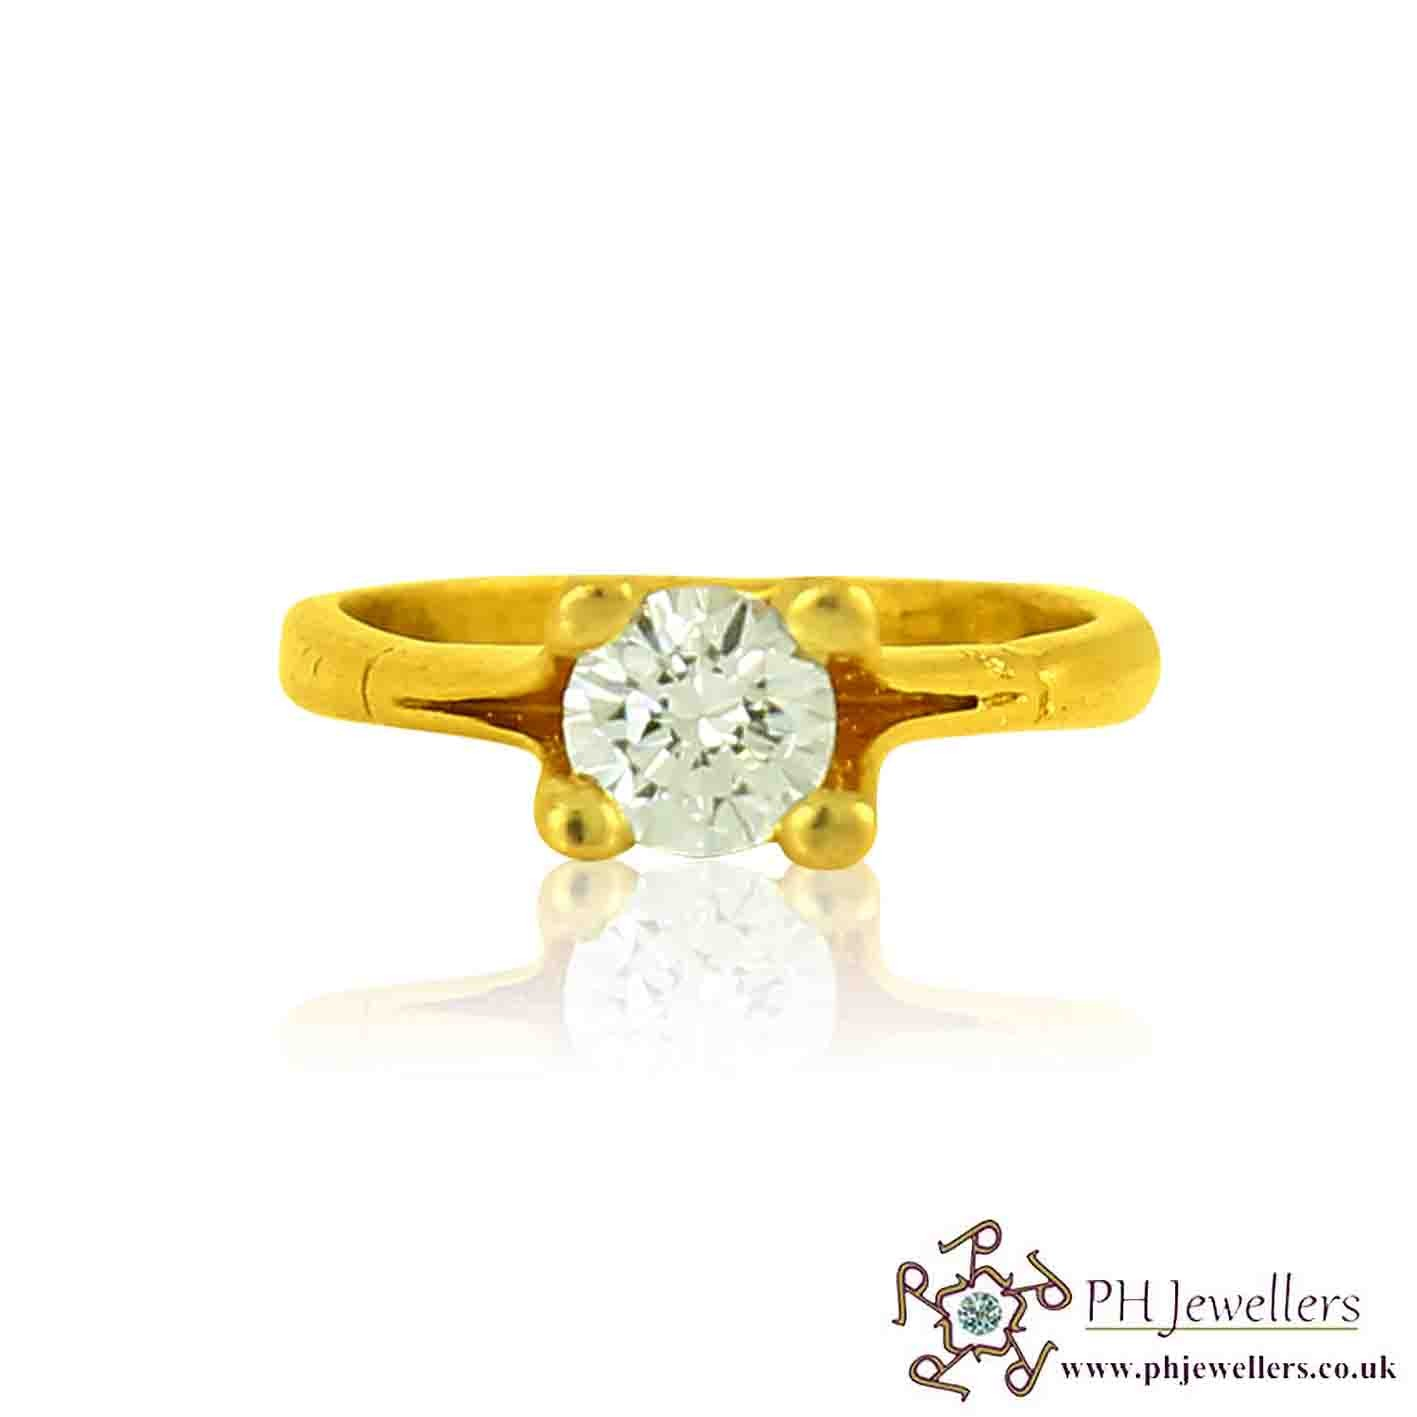 22ct 916 Hallmark Yellow Gold Engagement Round Size G1/2,H Ring CZ SR94